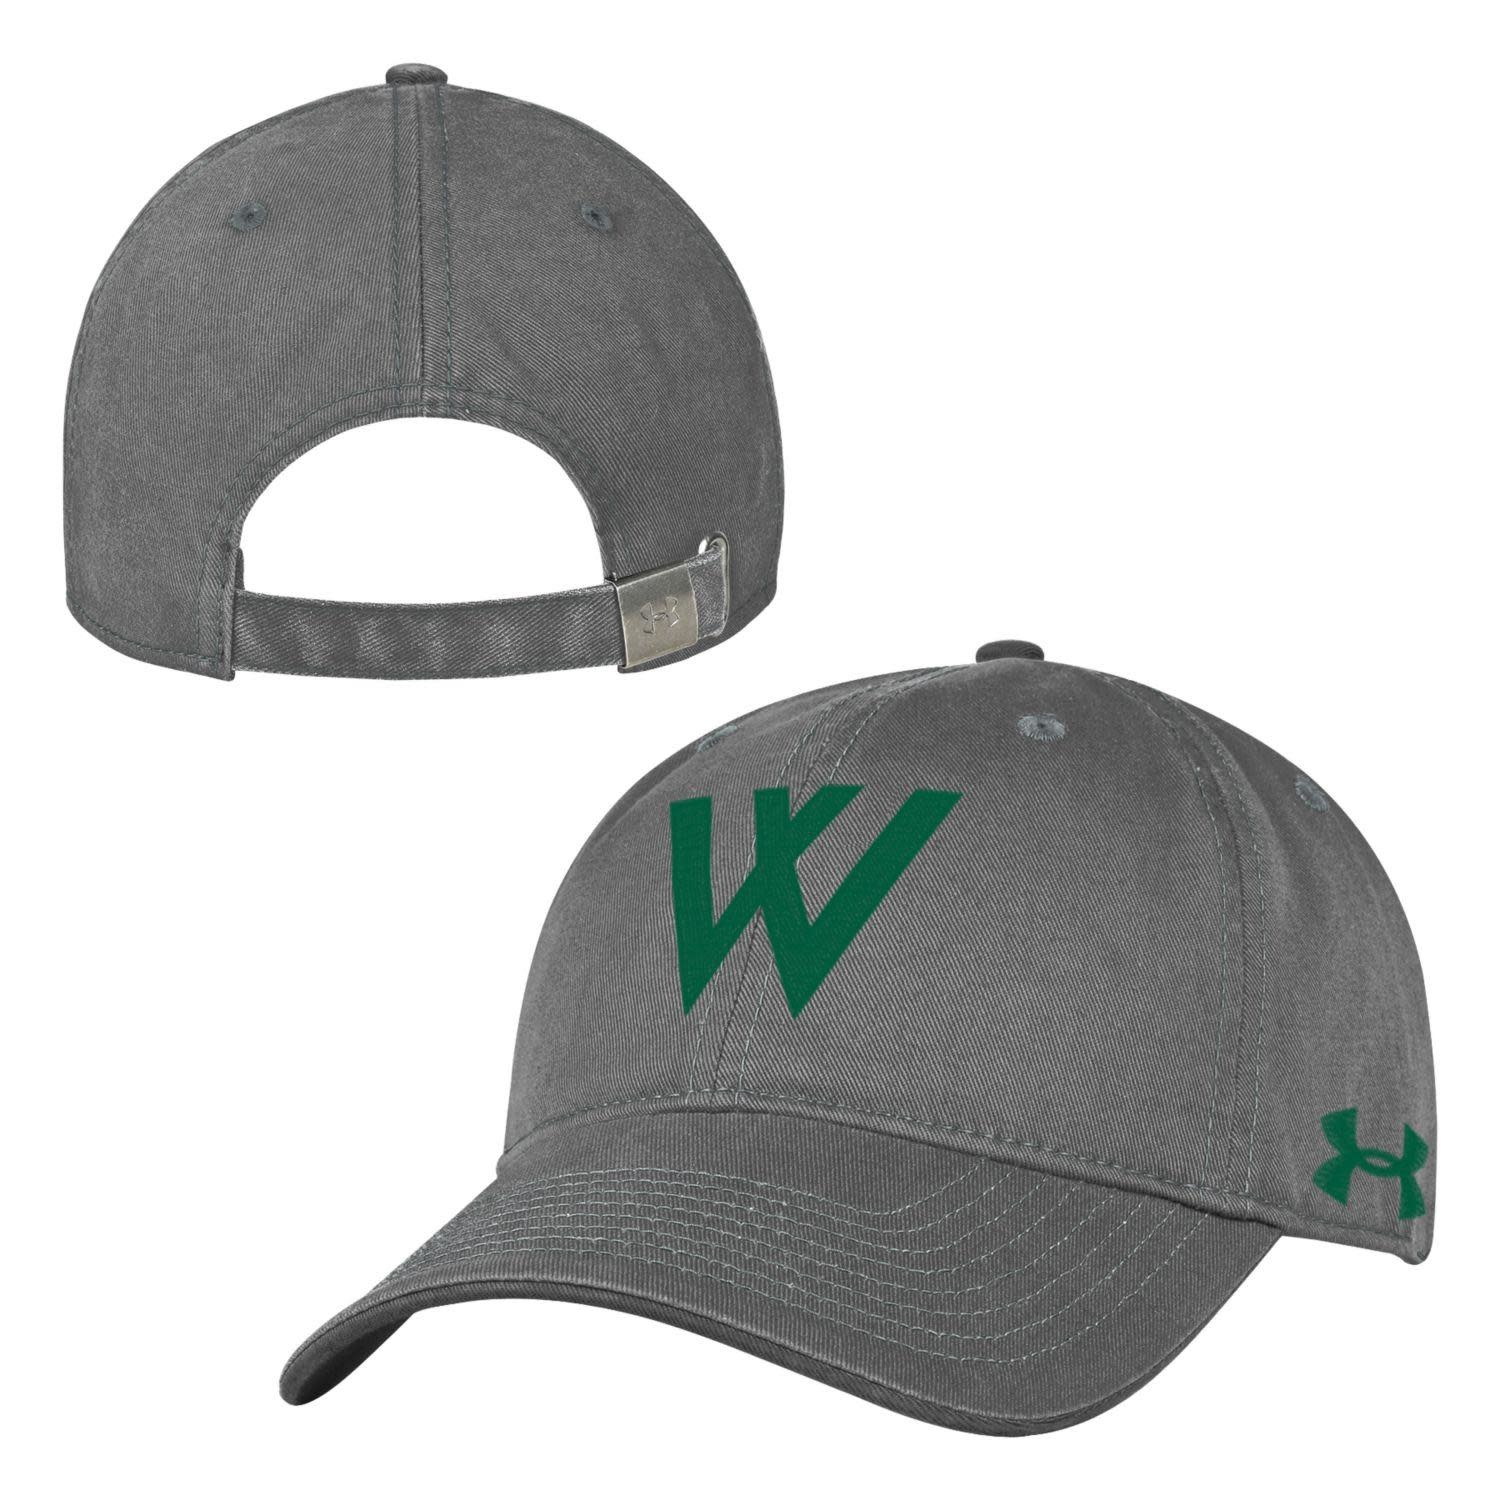 Under Armour Hat: Westminster